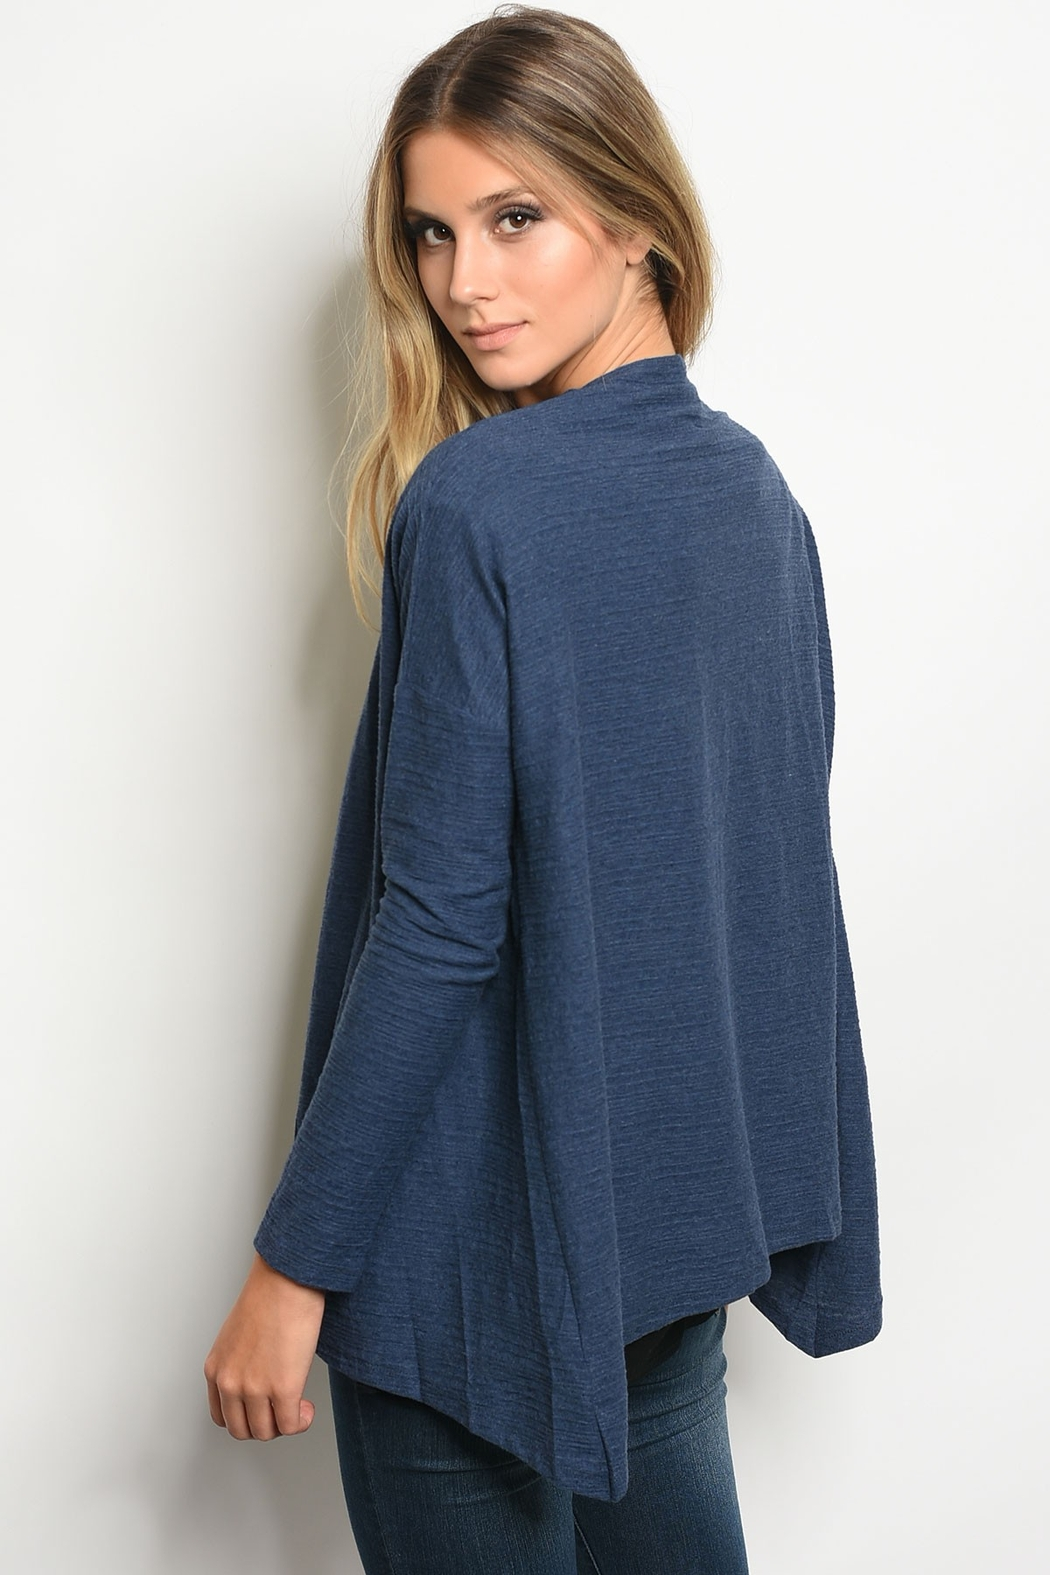 Very J  Navy Button Cardigan - Front Full Image